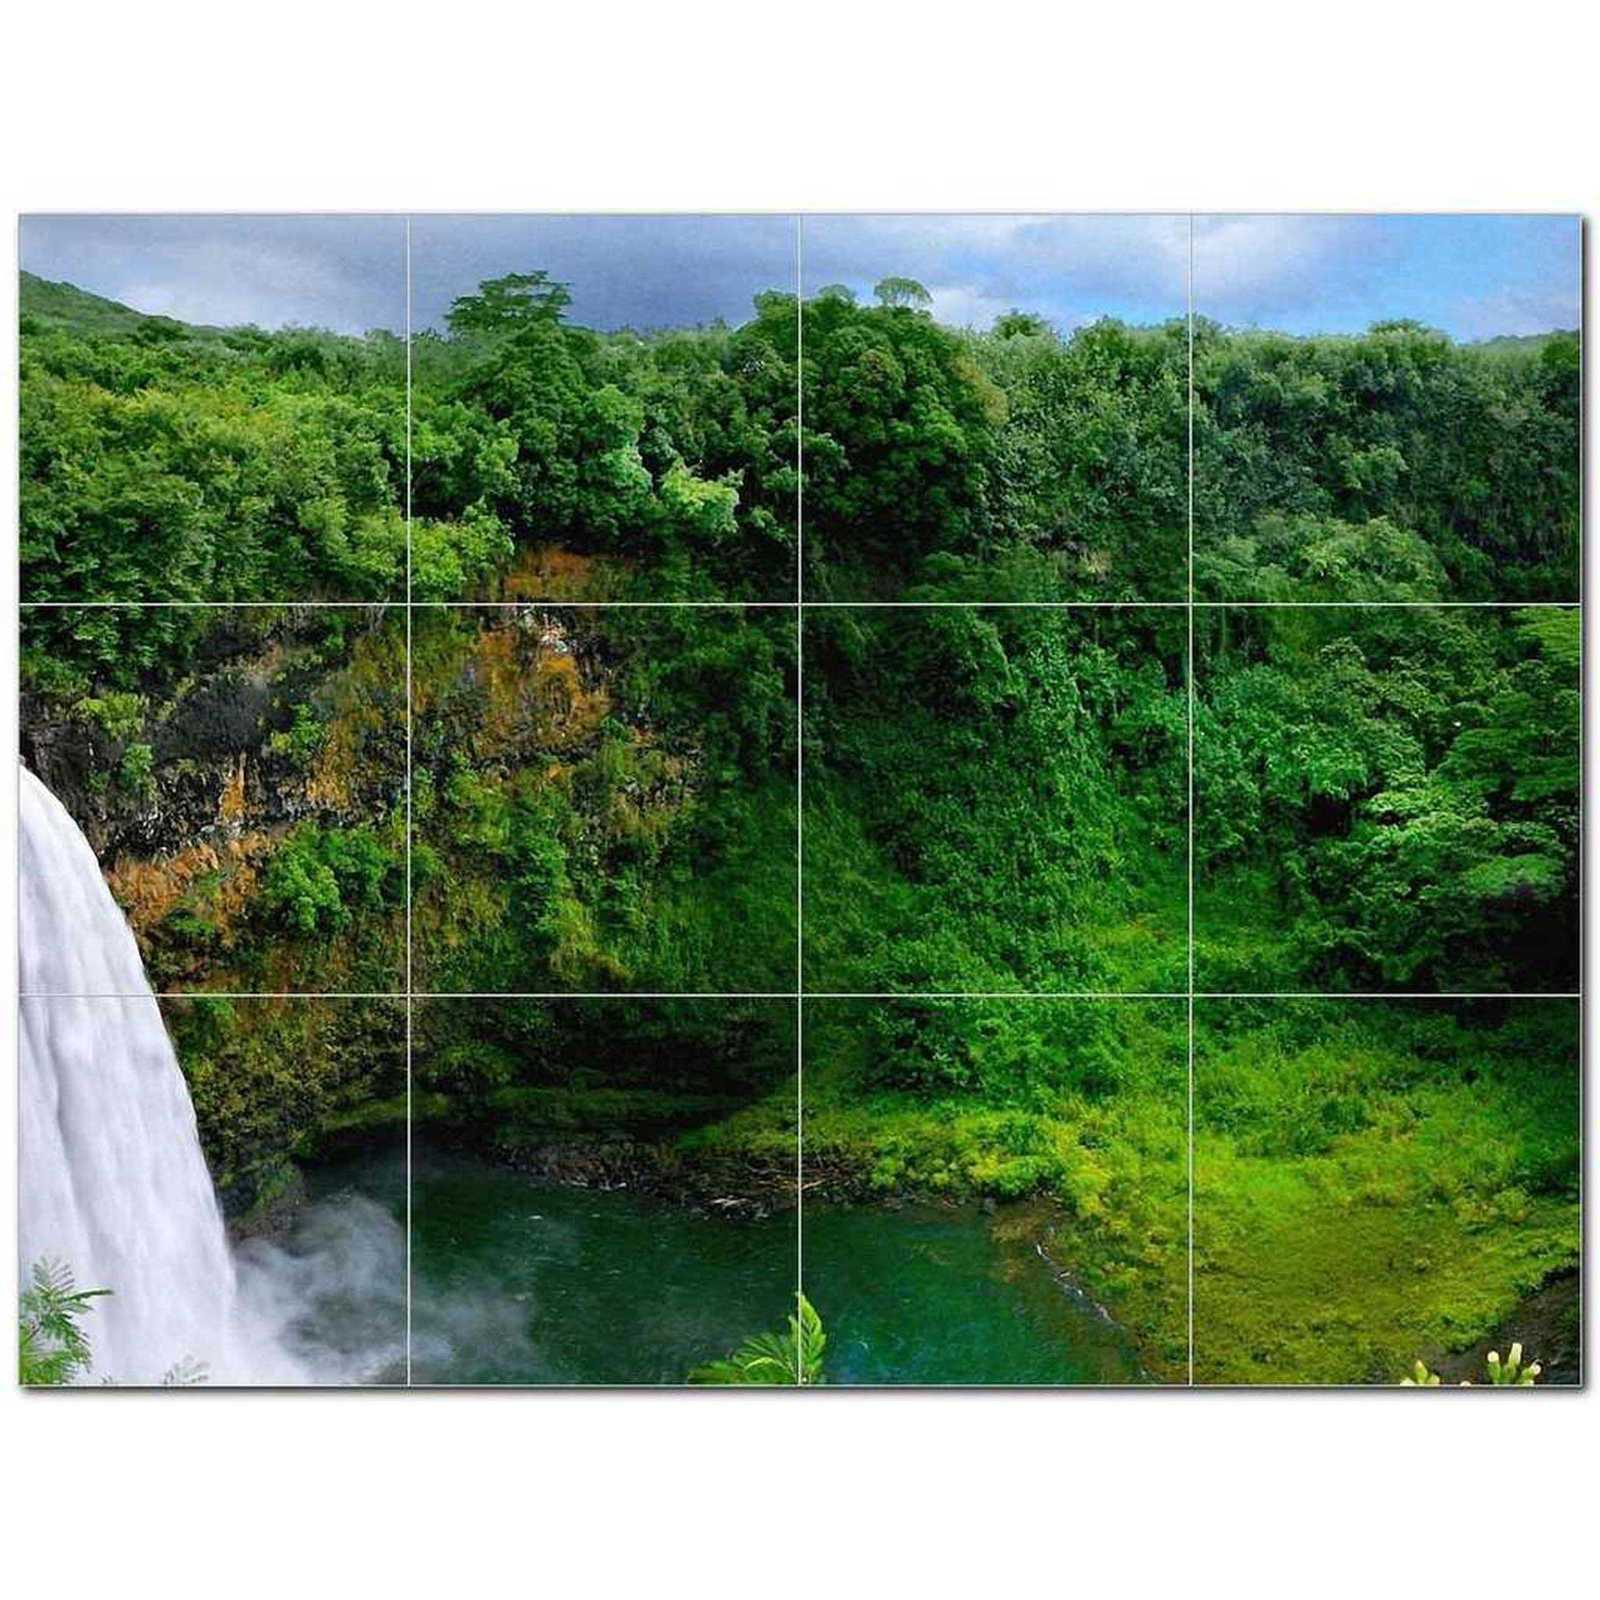 Primary image for Waterfall Picture Ceramic Tile Mural Kitchen Backsplash Bathroom Shower BAZ40615